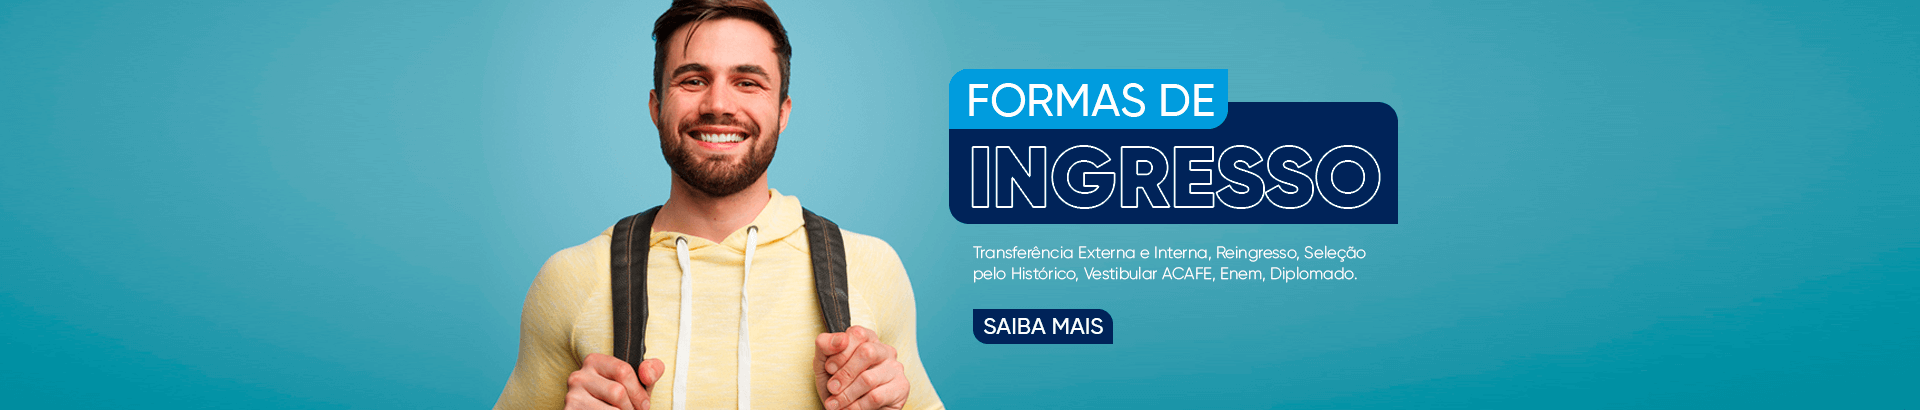 Banner-Home-desktop-Formas de Ingresso UNIFEBEo-1920x410px-1